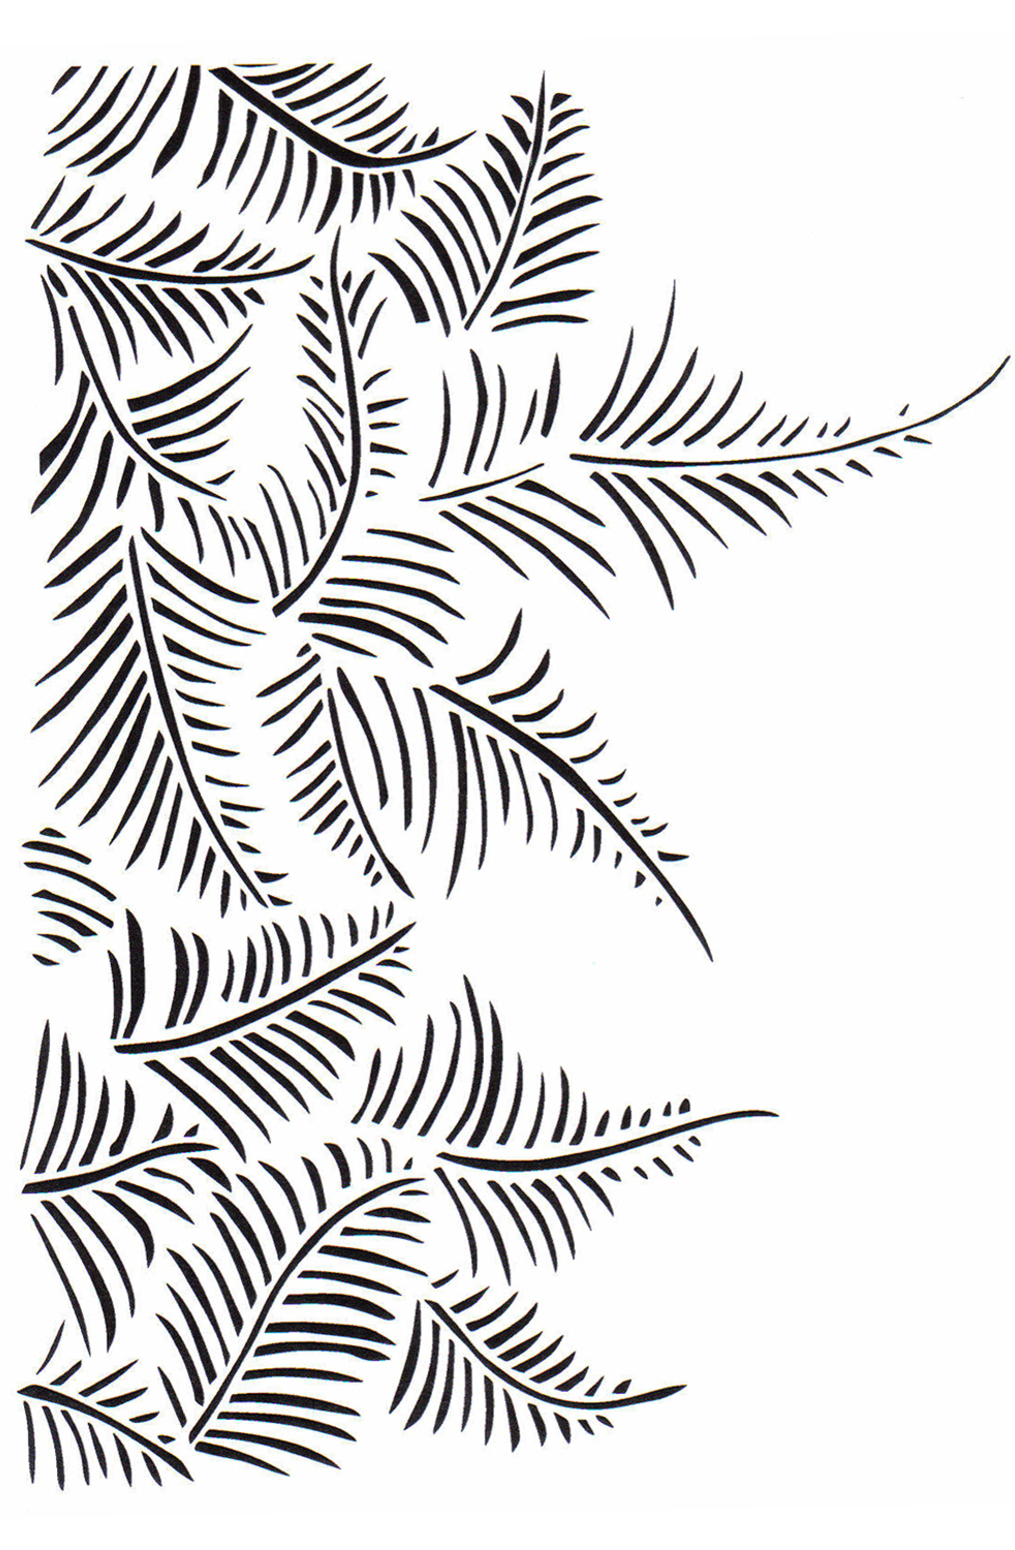 The school of making fern stencil 1